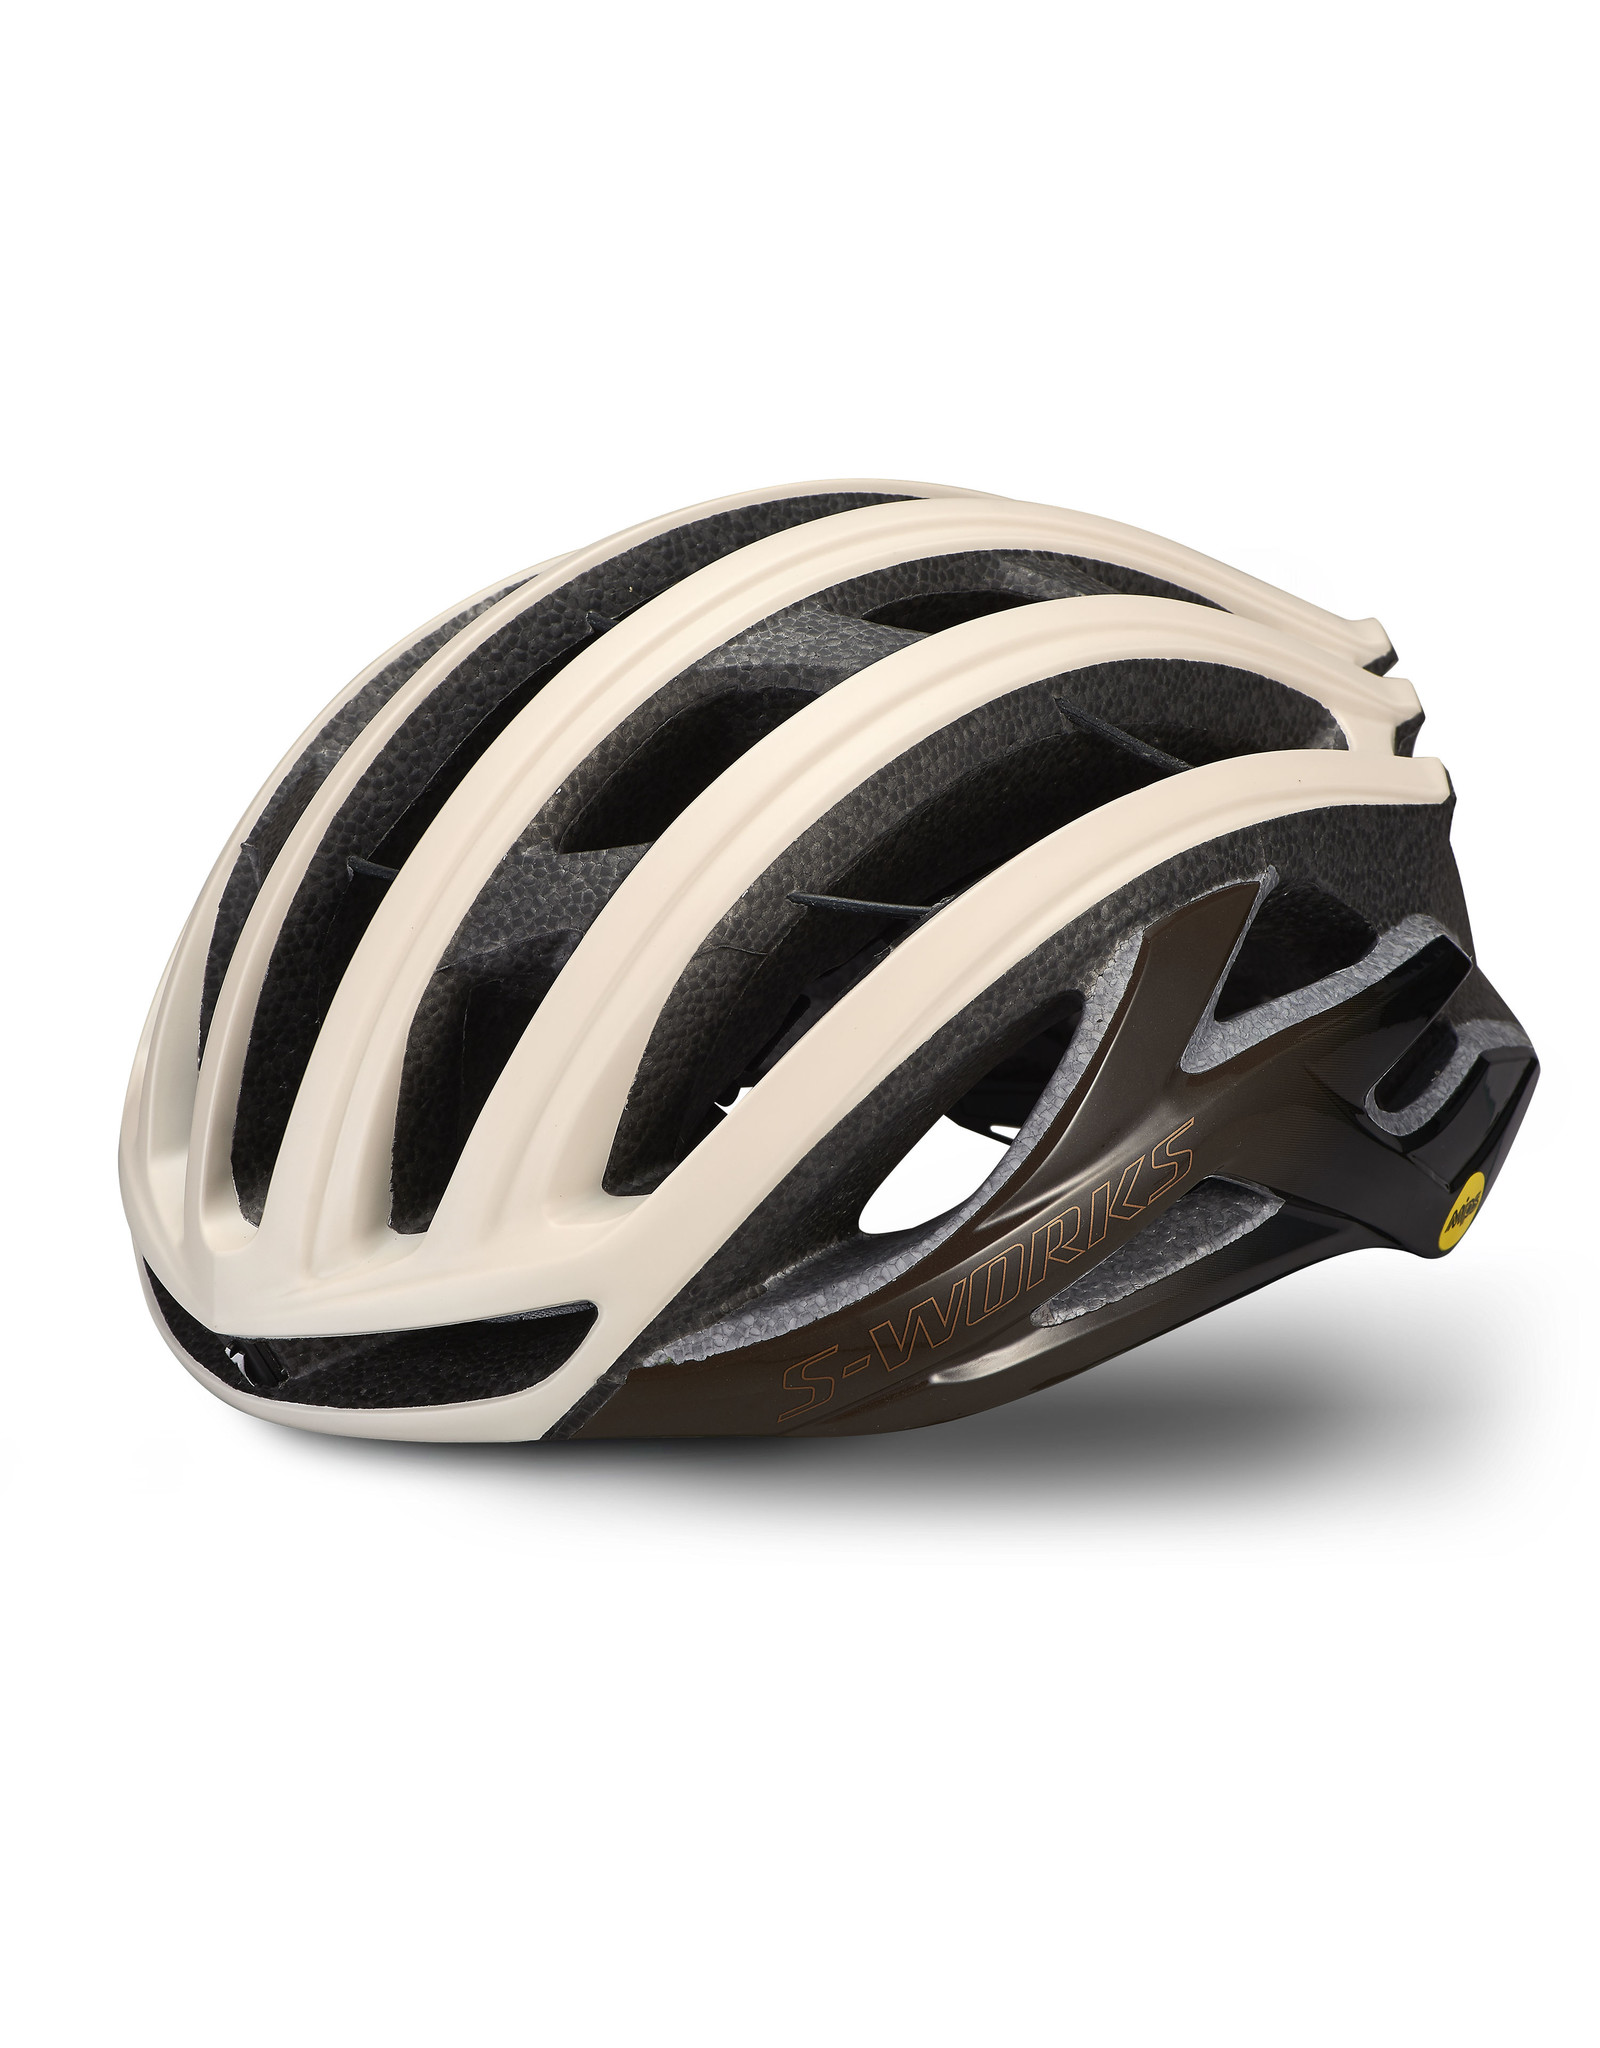 SPECIALIZED SW PREVAIL II VENT ANGI MIPS HELMET